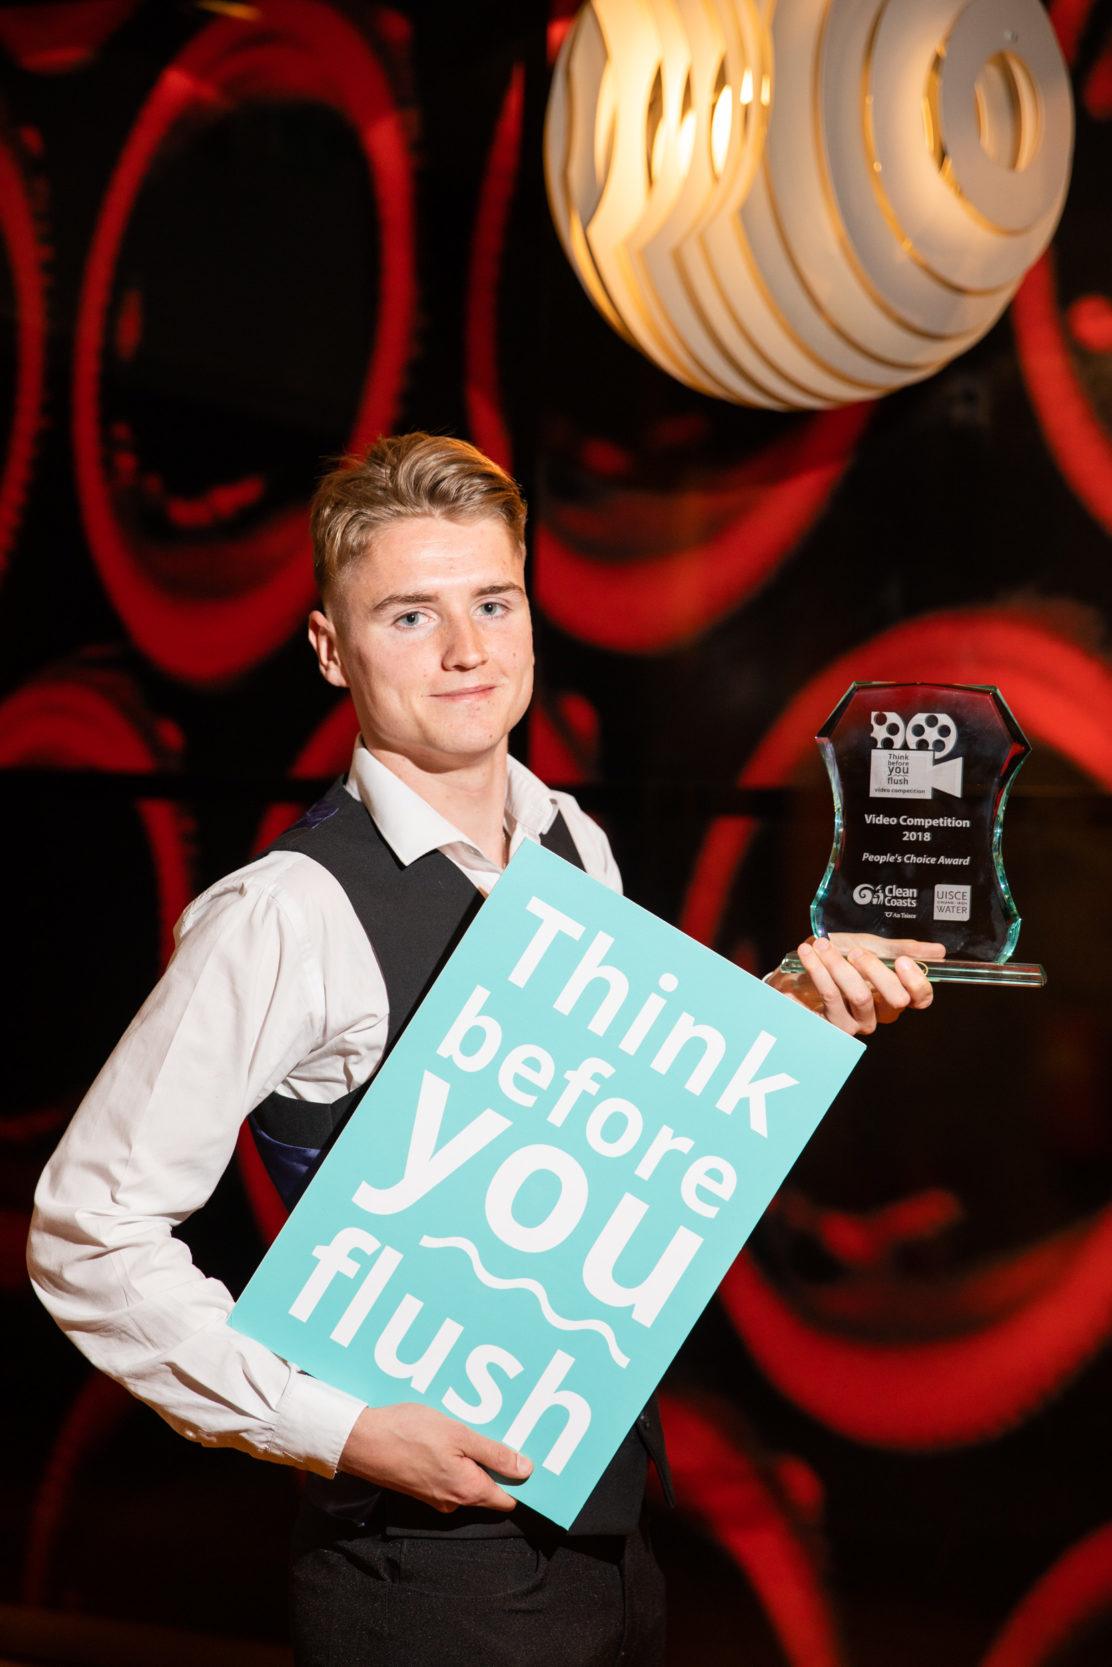 Liam Hennessy - People's Choice Award